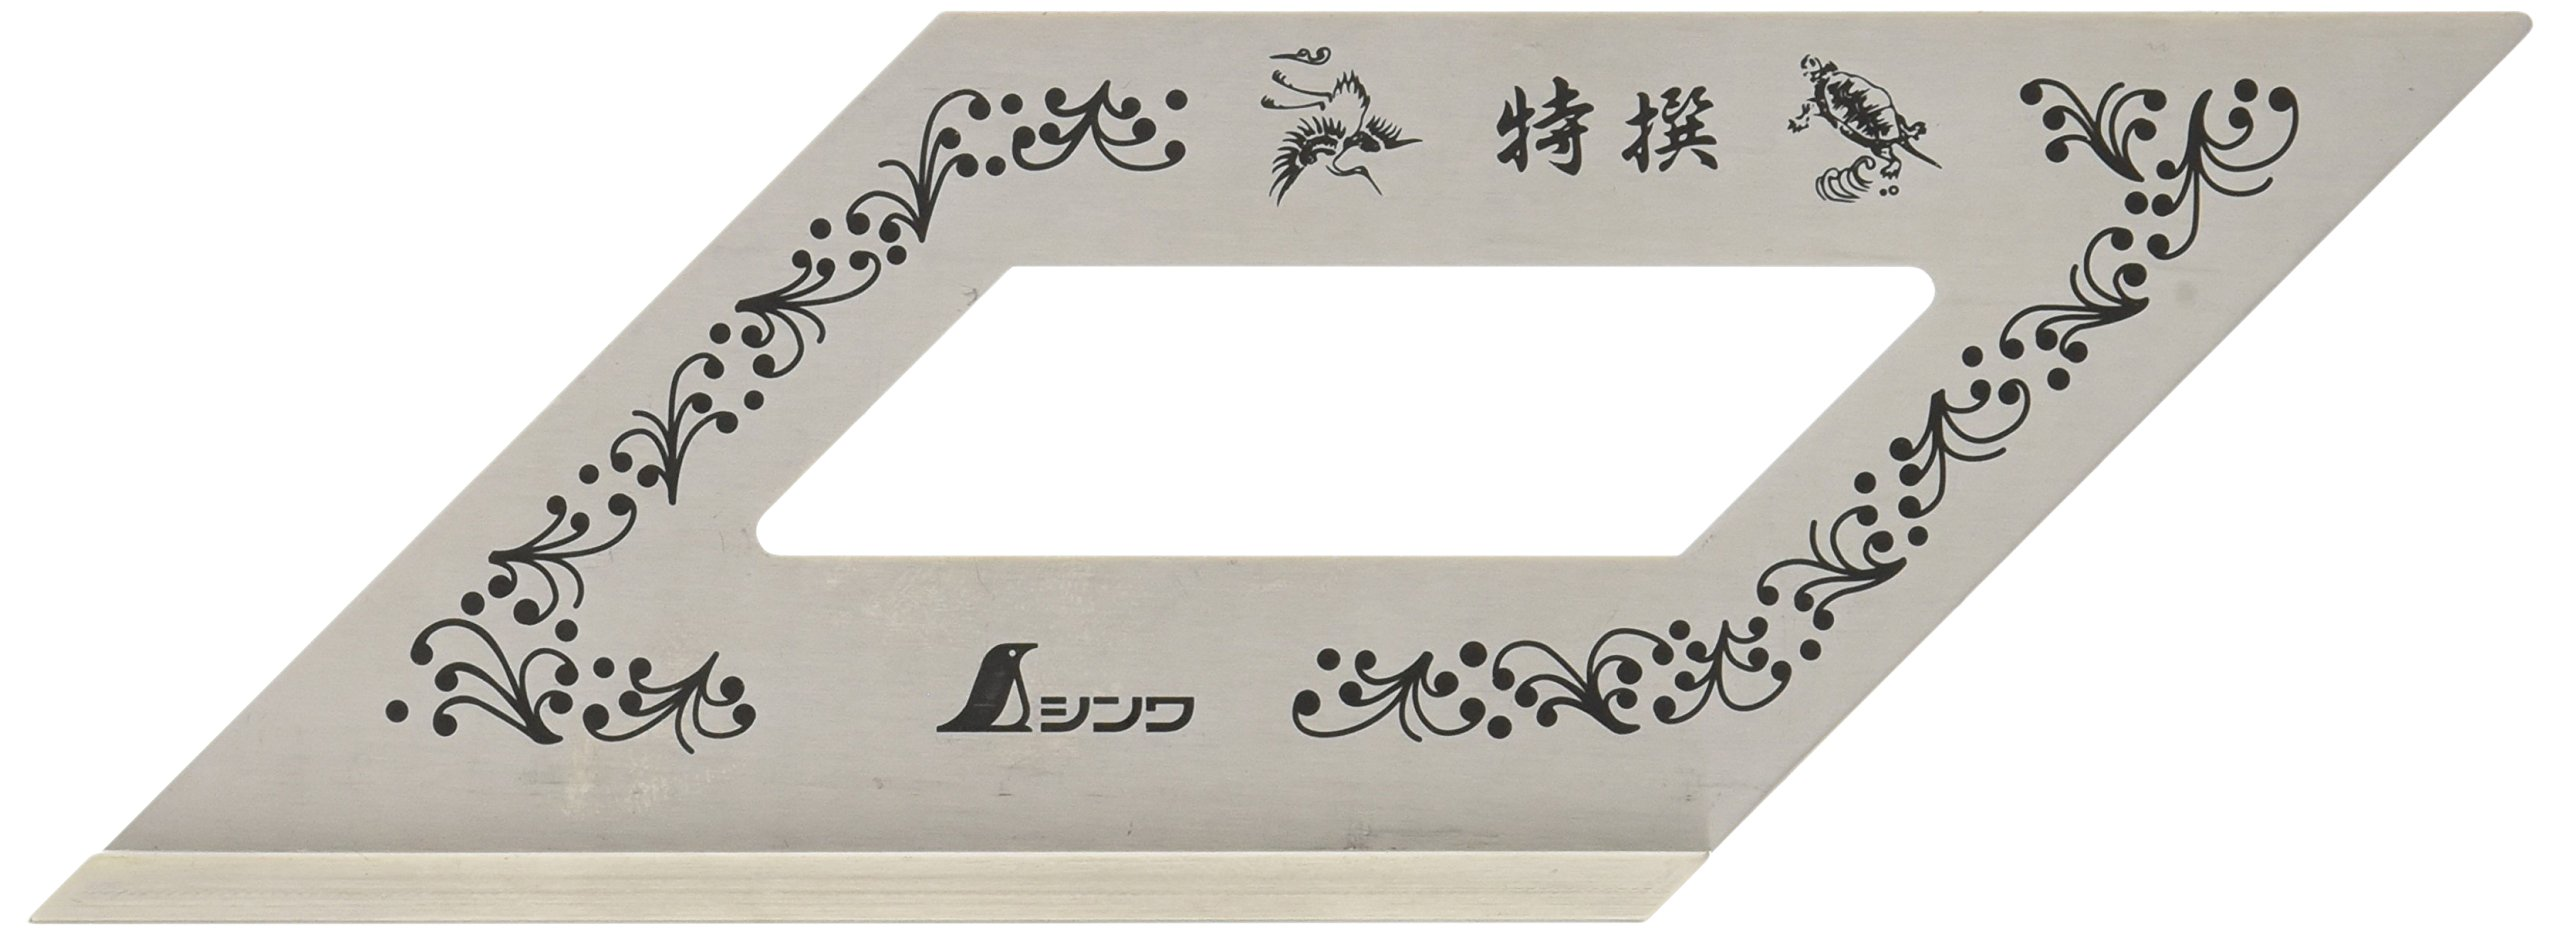 Shinwa 62103 Japanese Mitre Square